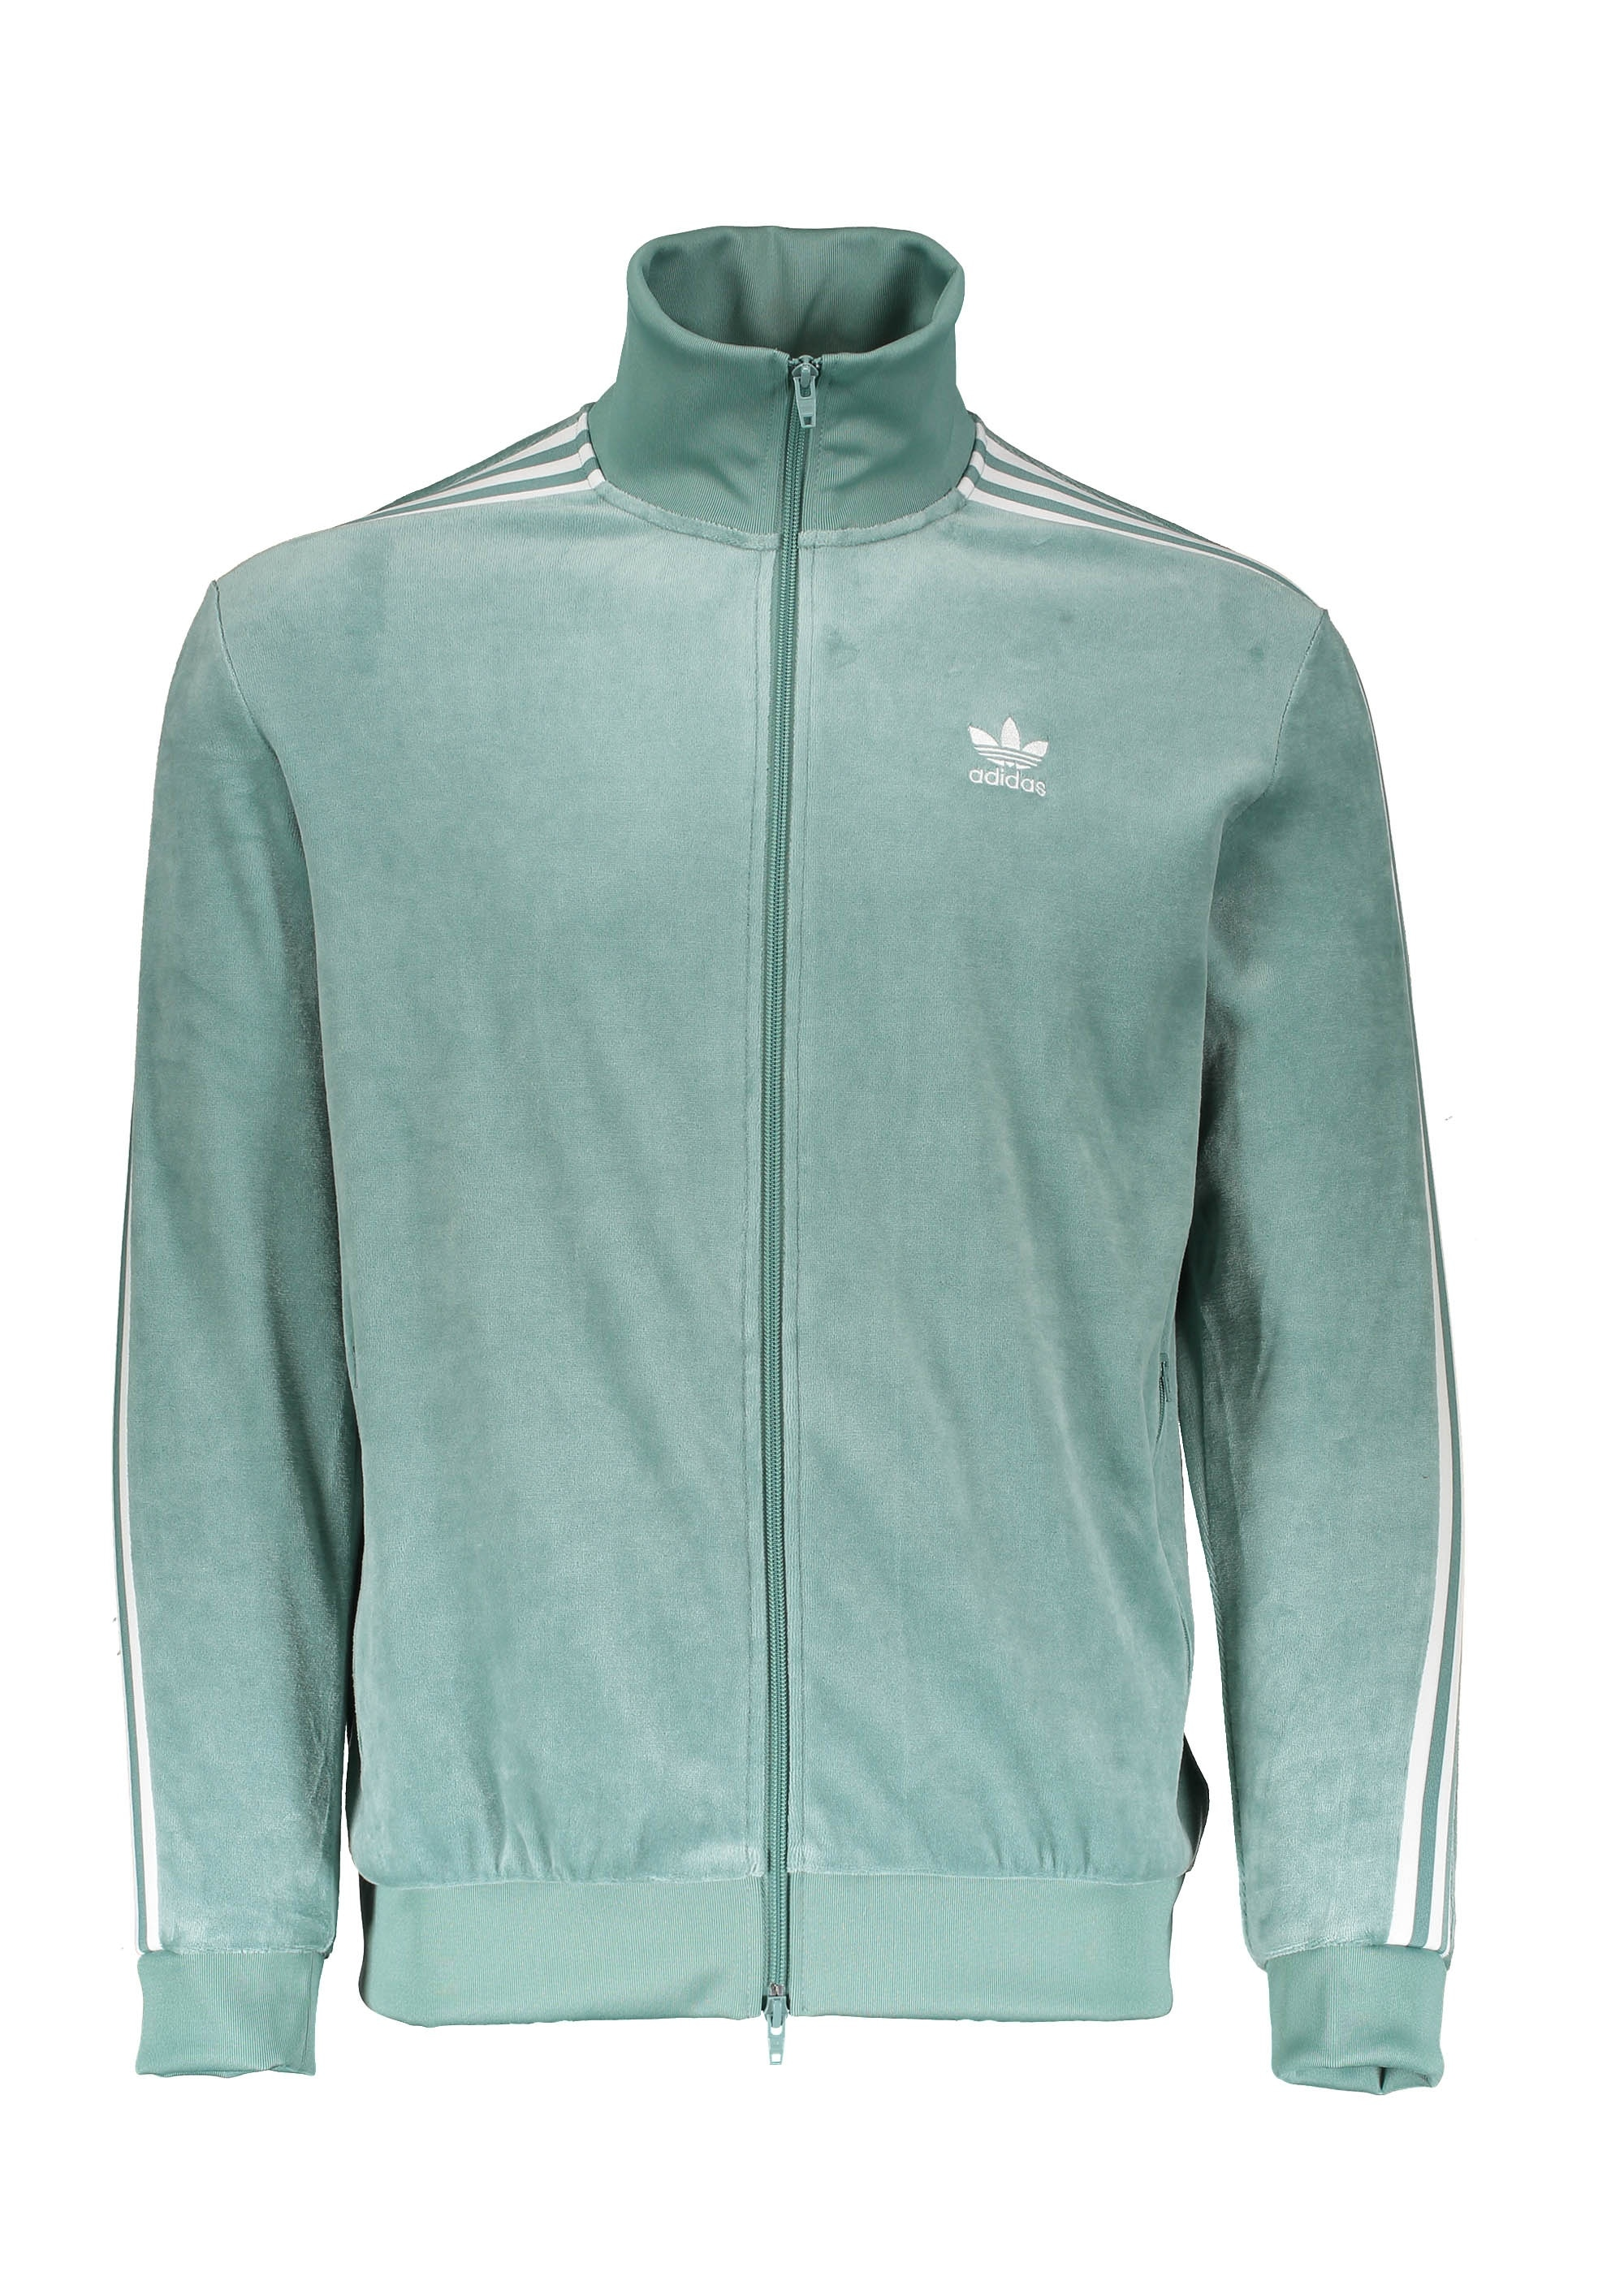 adidas Originals Apparel Cozy Track Top Green White